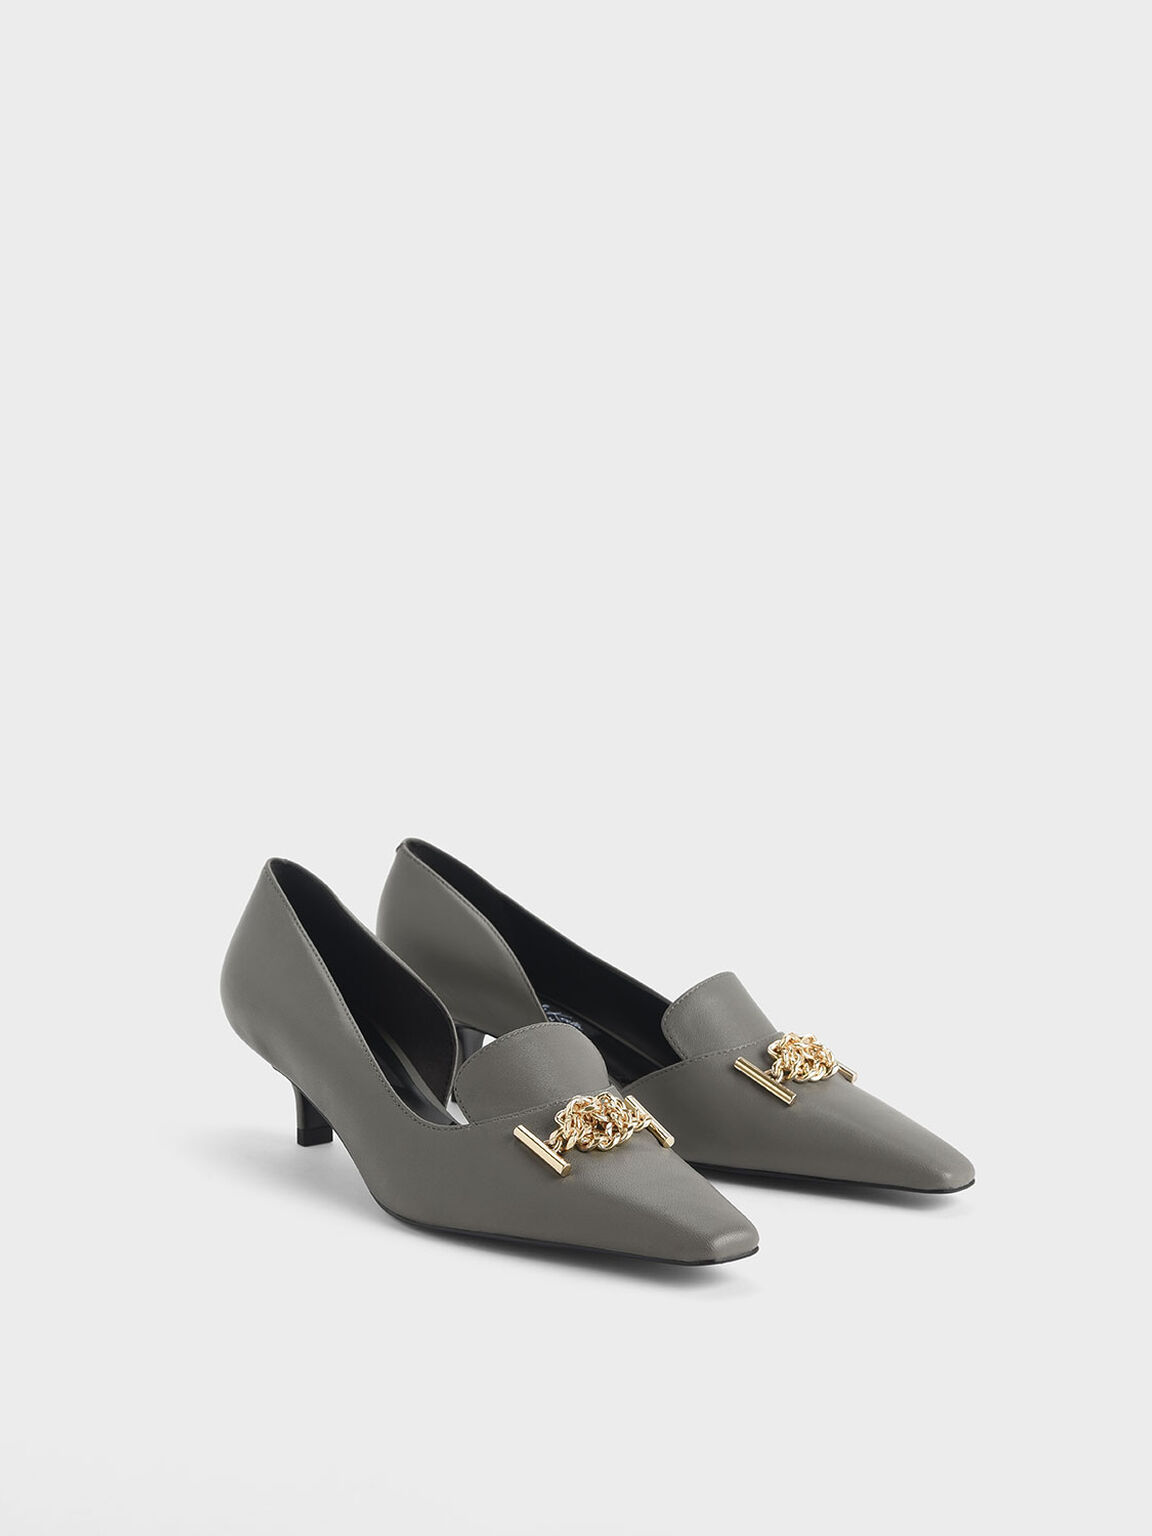 Knotted Chain Detail Leather Blade Heel D'Orsay Pumps, Sage Green, hi-res